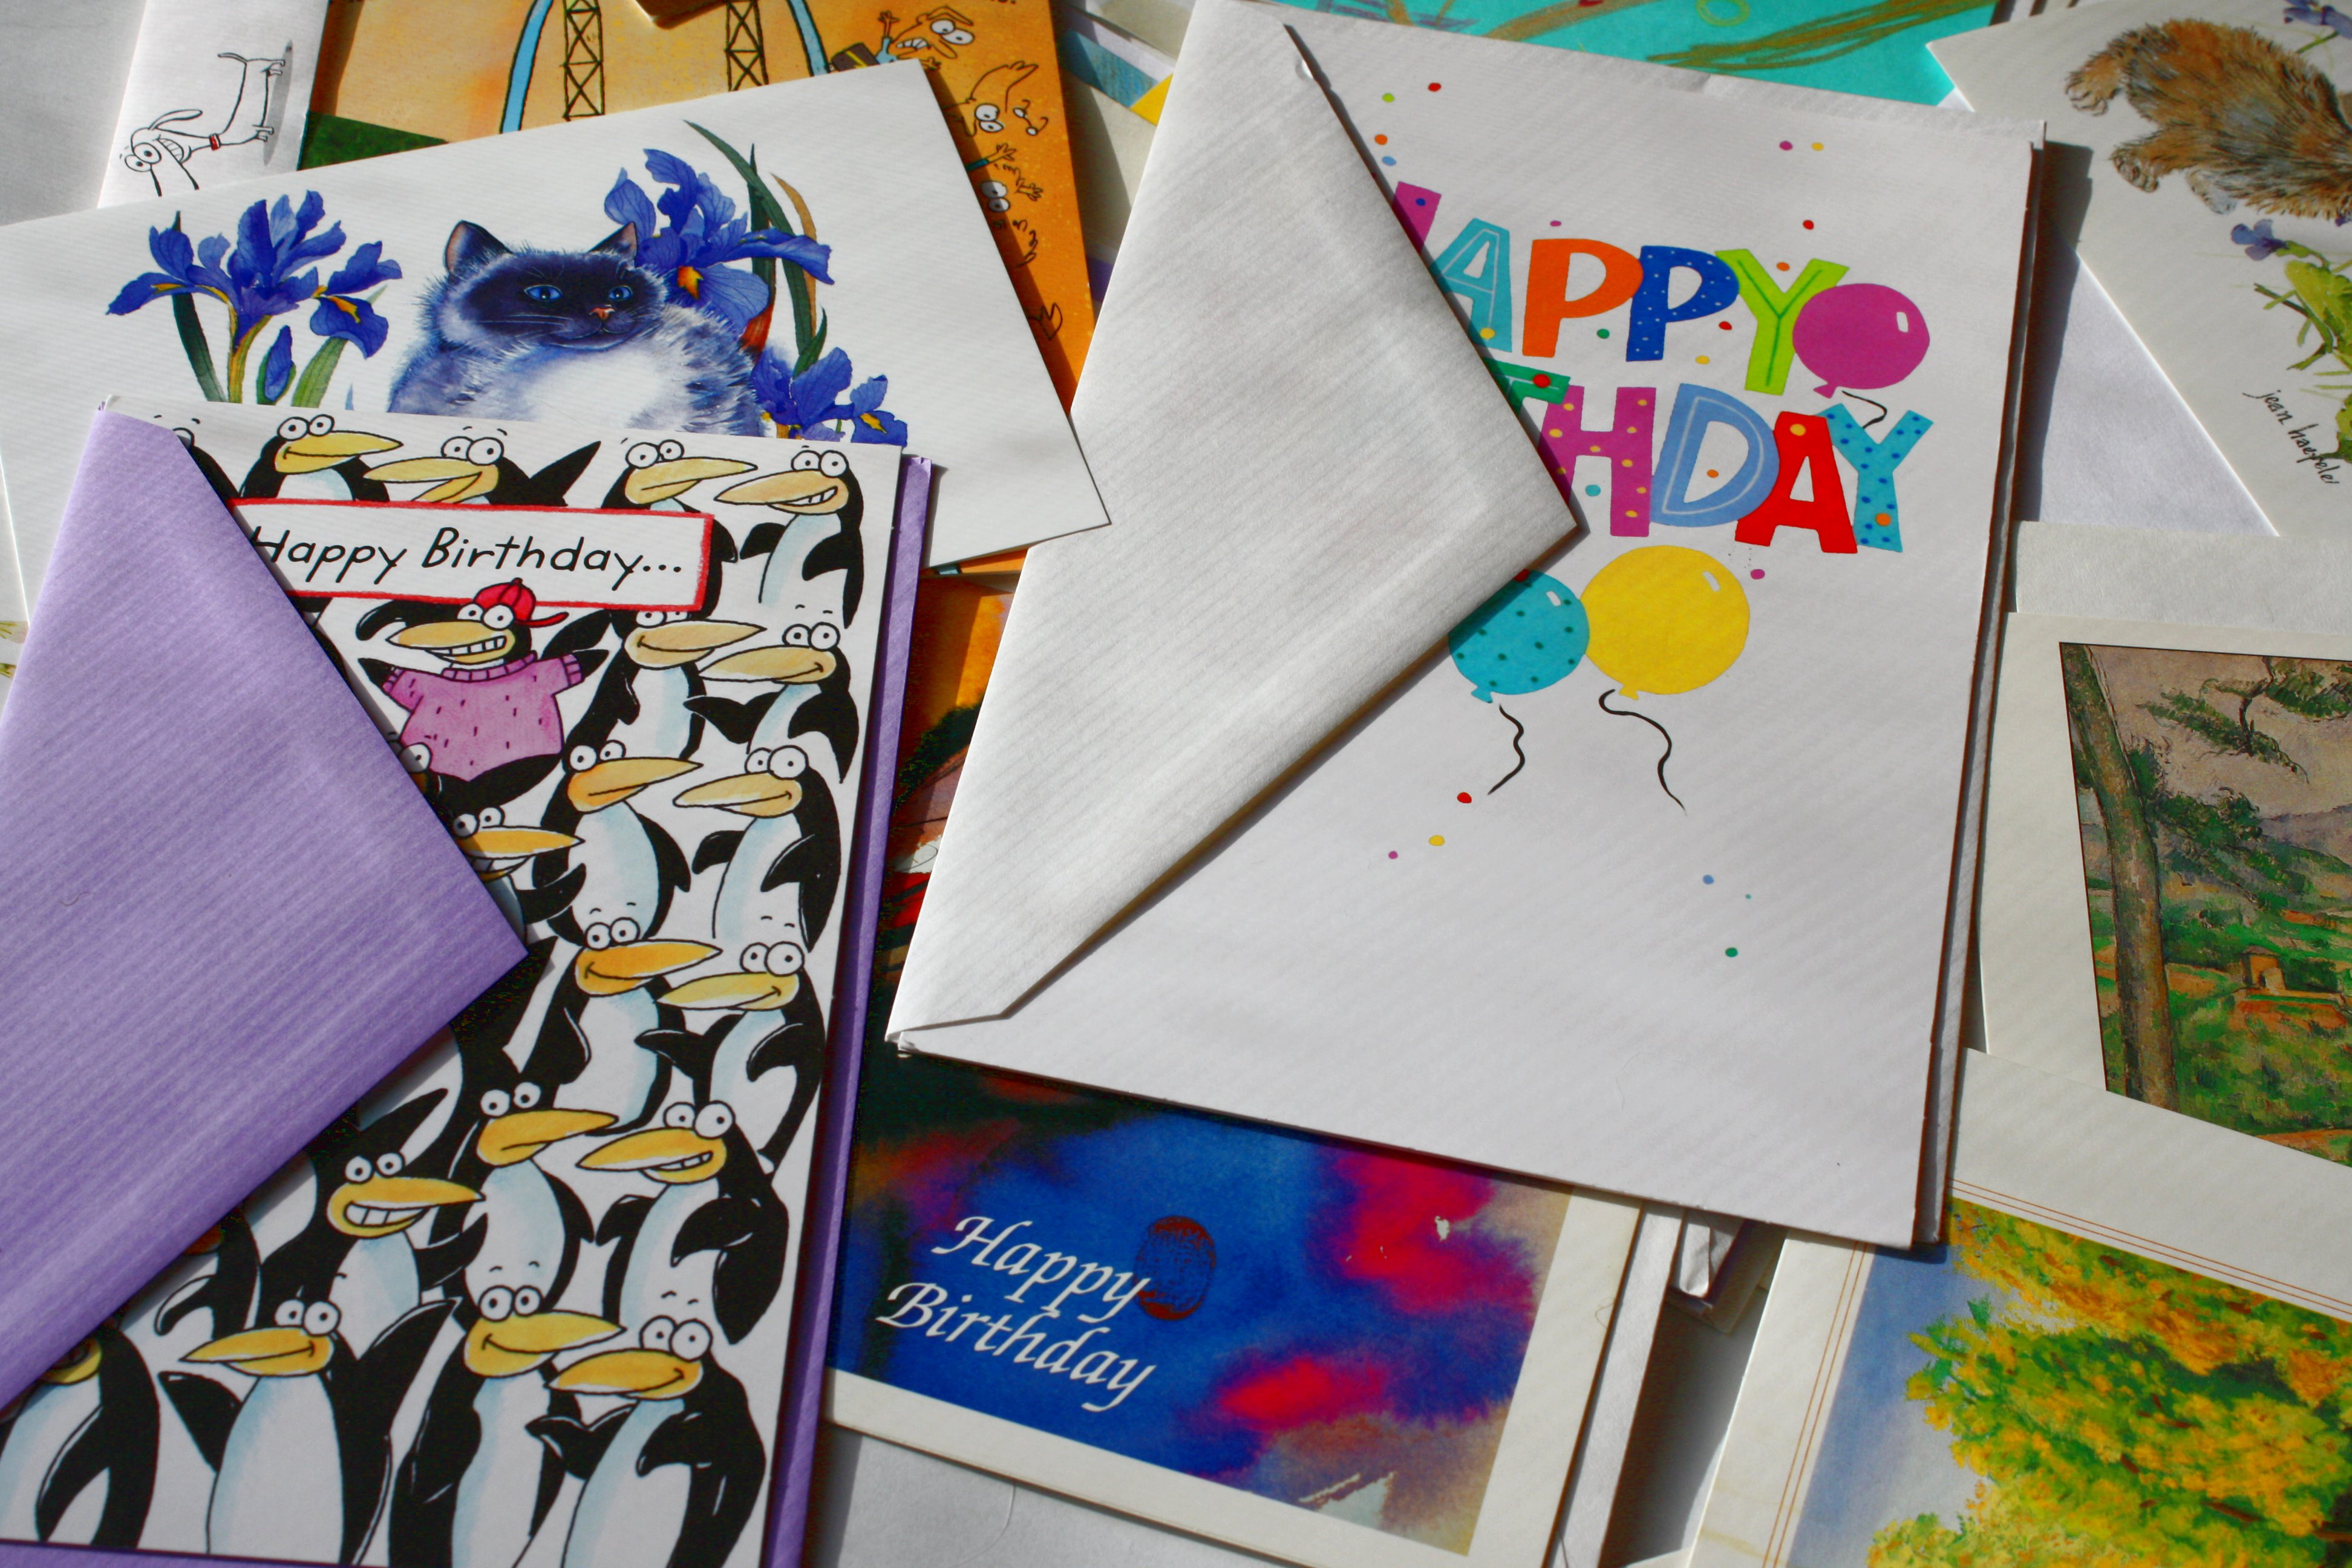 Birthday cards picture free photograph photos public domain birthday cards bookmarktalkfo Image collections